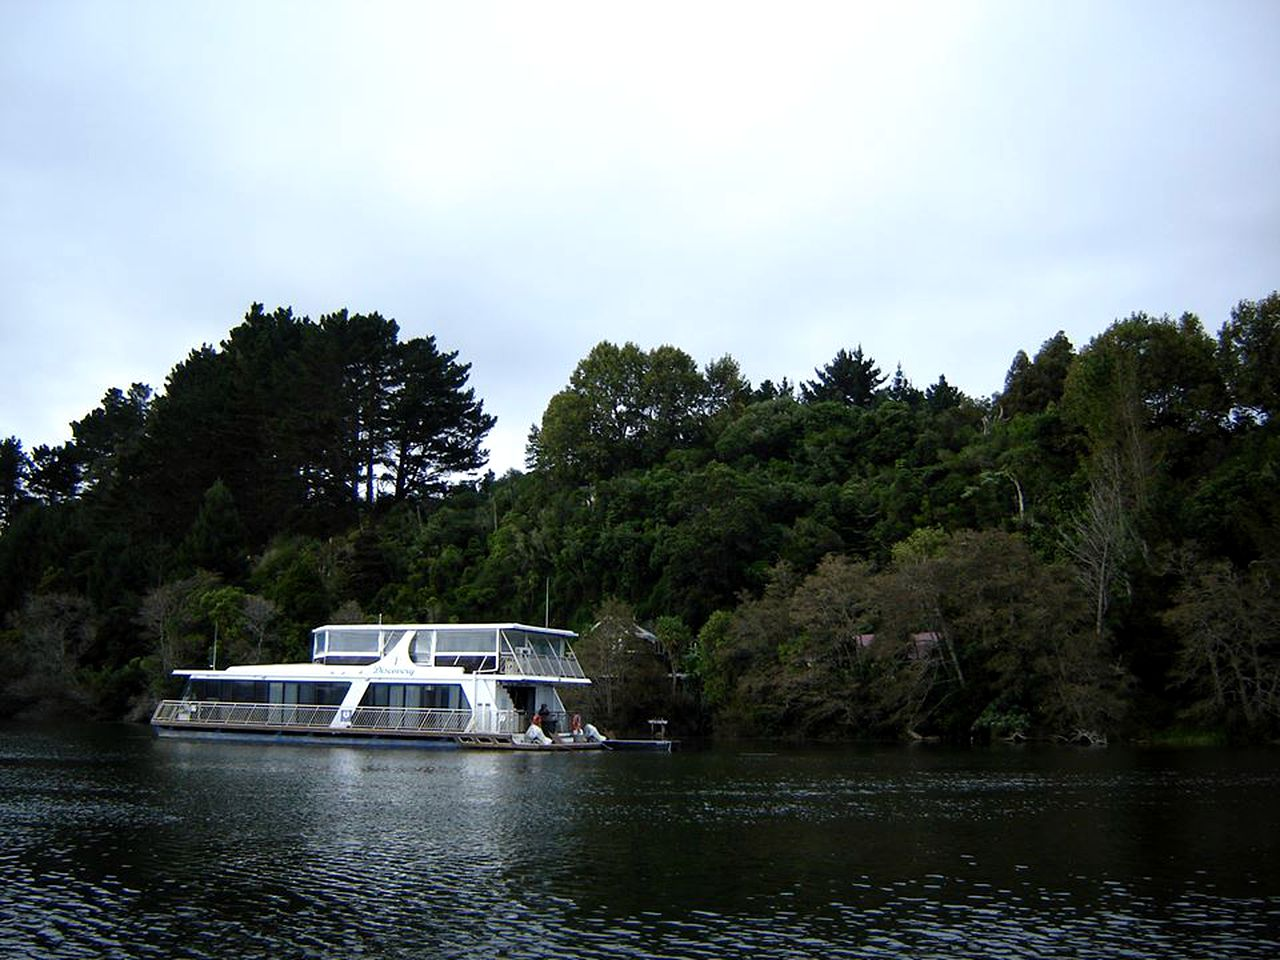 Boats & Floating Homes (Tuakau, North Island, New Zealand)